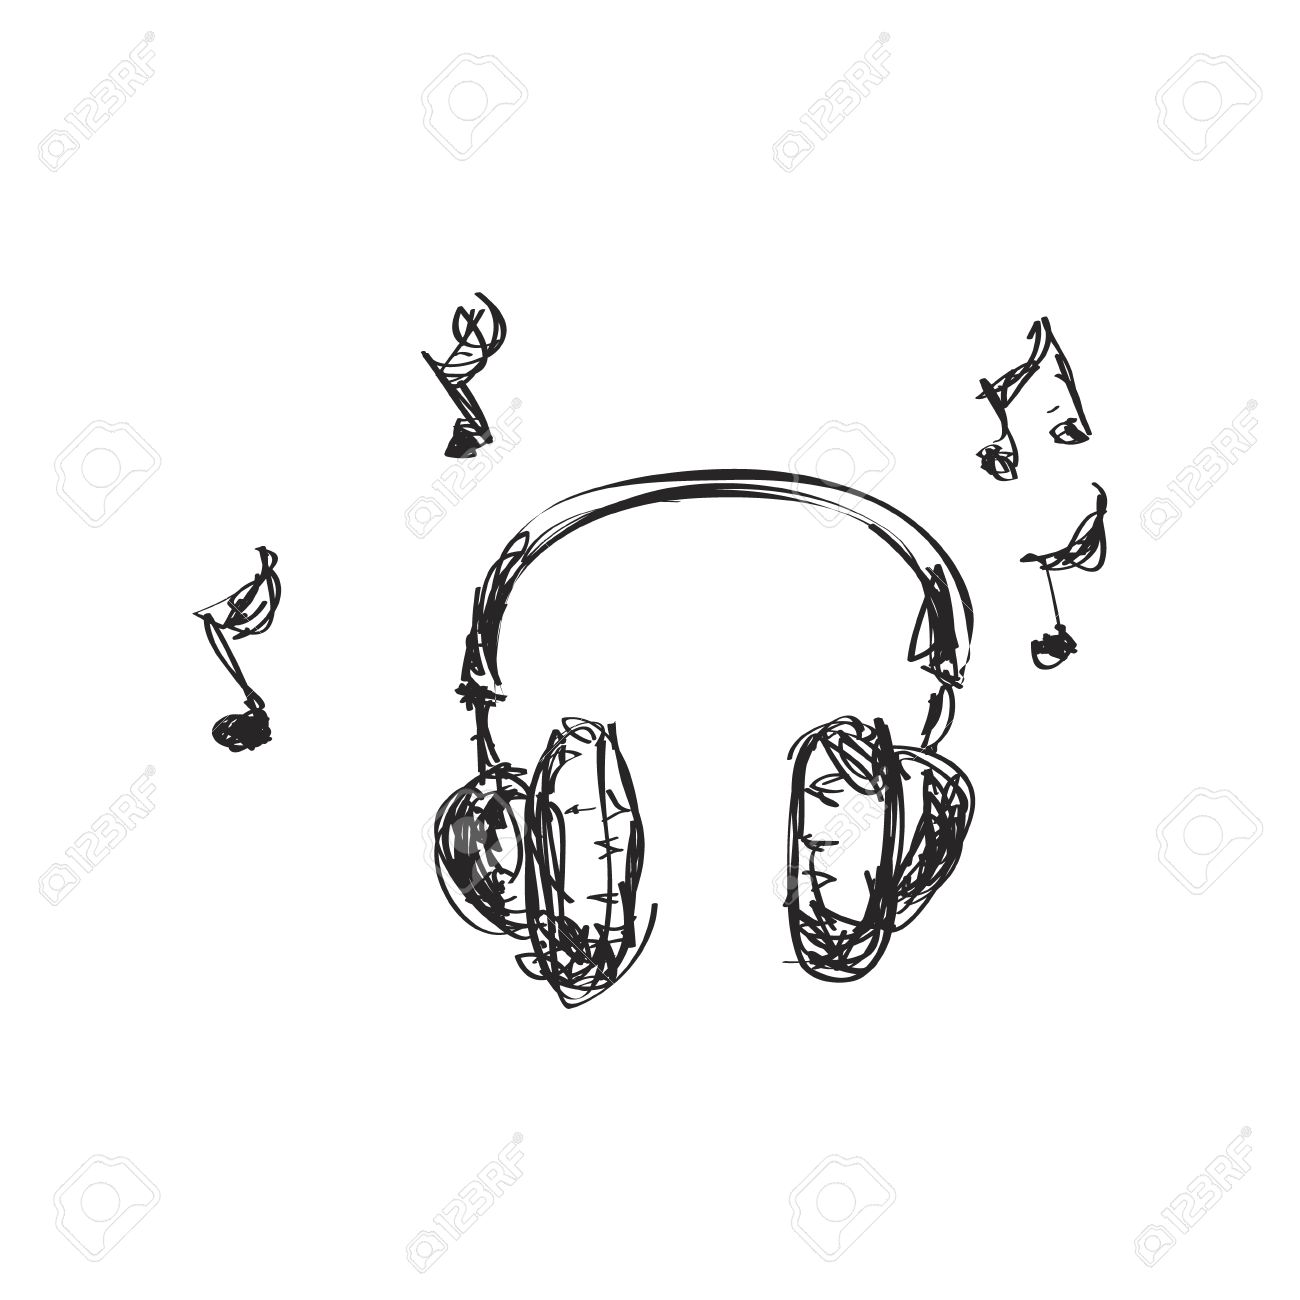 Simple hand drawn doodle of a set of headphones - 42090284